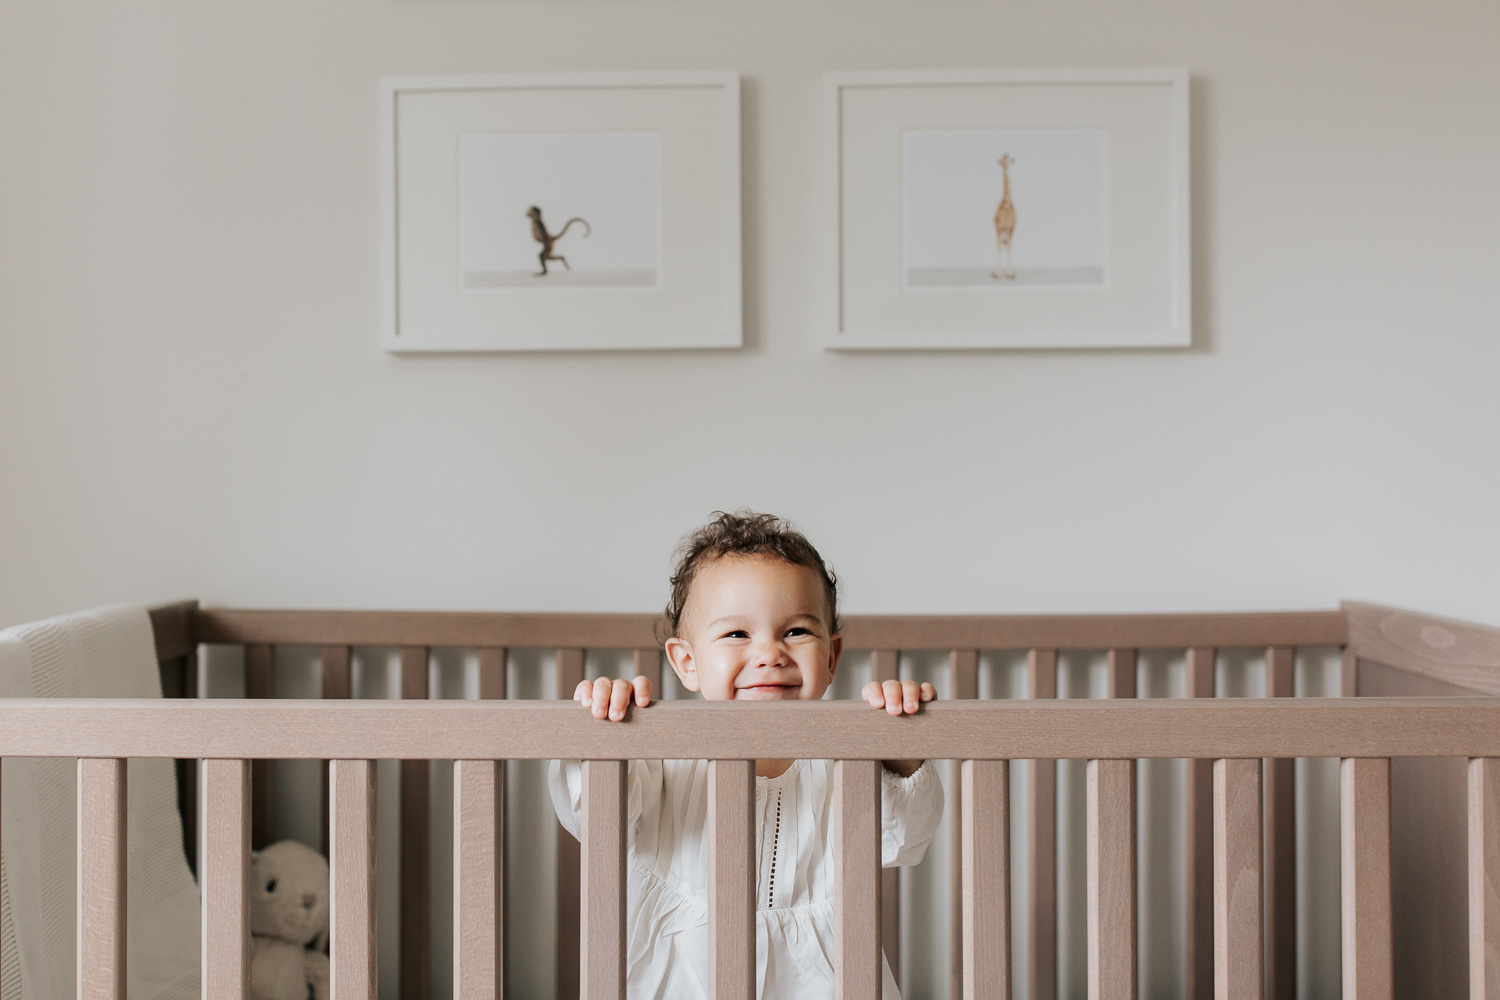 2 year old girl with dark curly hair and brown eyes in cream top and dark pants standing in crib looking up and smiling in neutral nursery with animal prints on wall - Markham Lifestyle Photography